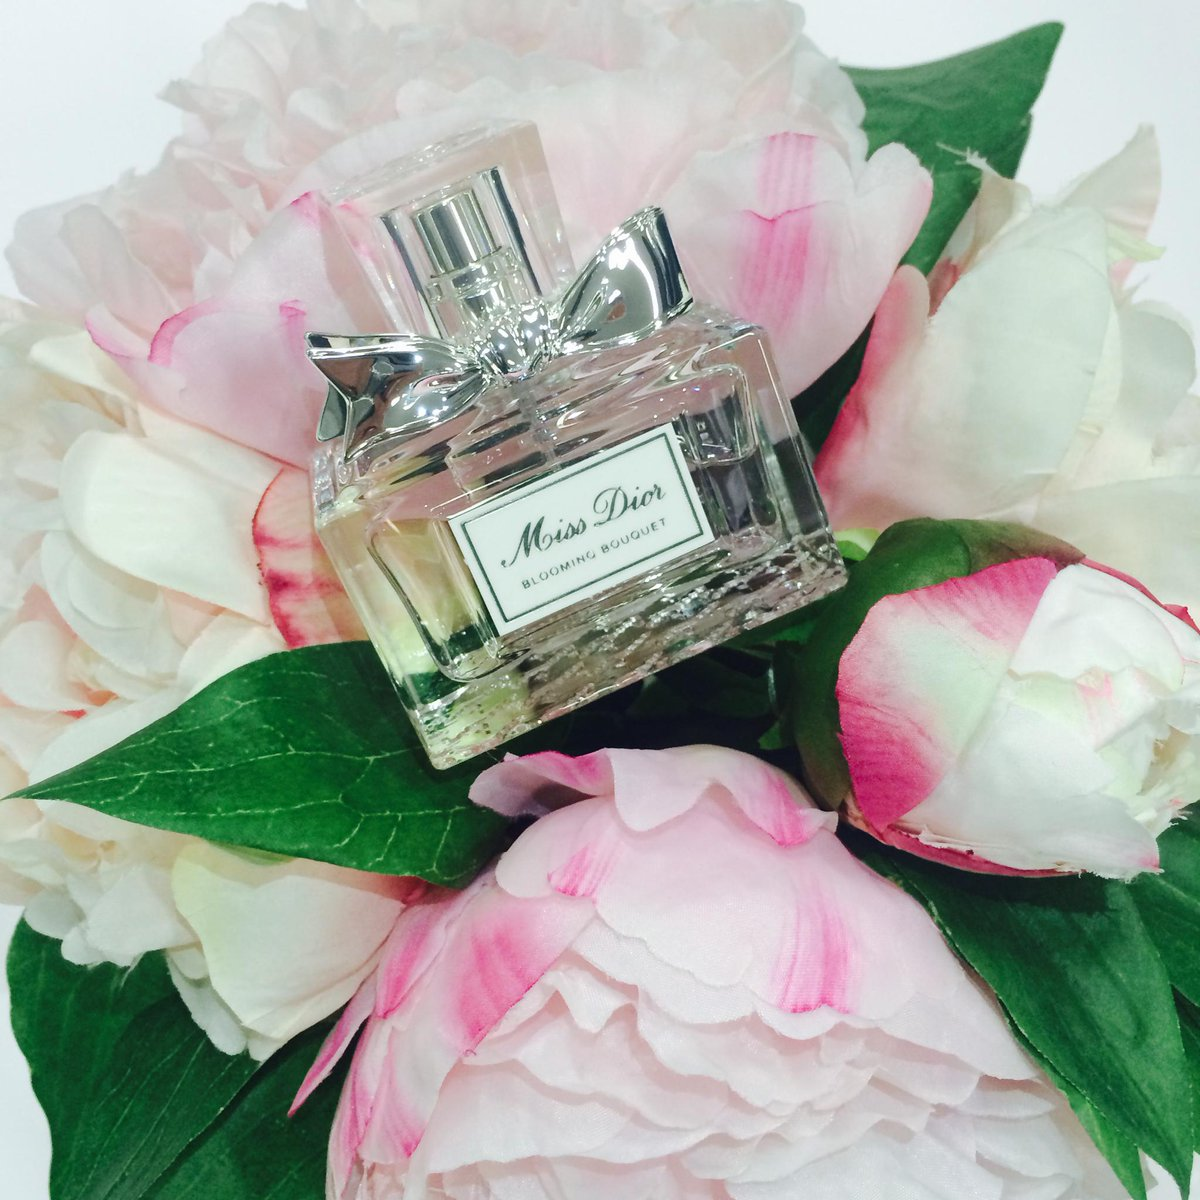 Embrace summer with miss dior blooming bouquet 30ml edition perfect embrace summer with miss dior blooming bouquet 30ml edition perfect handbag size http izmirmasajfo